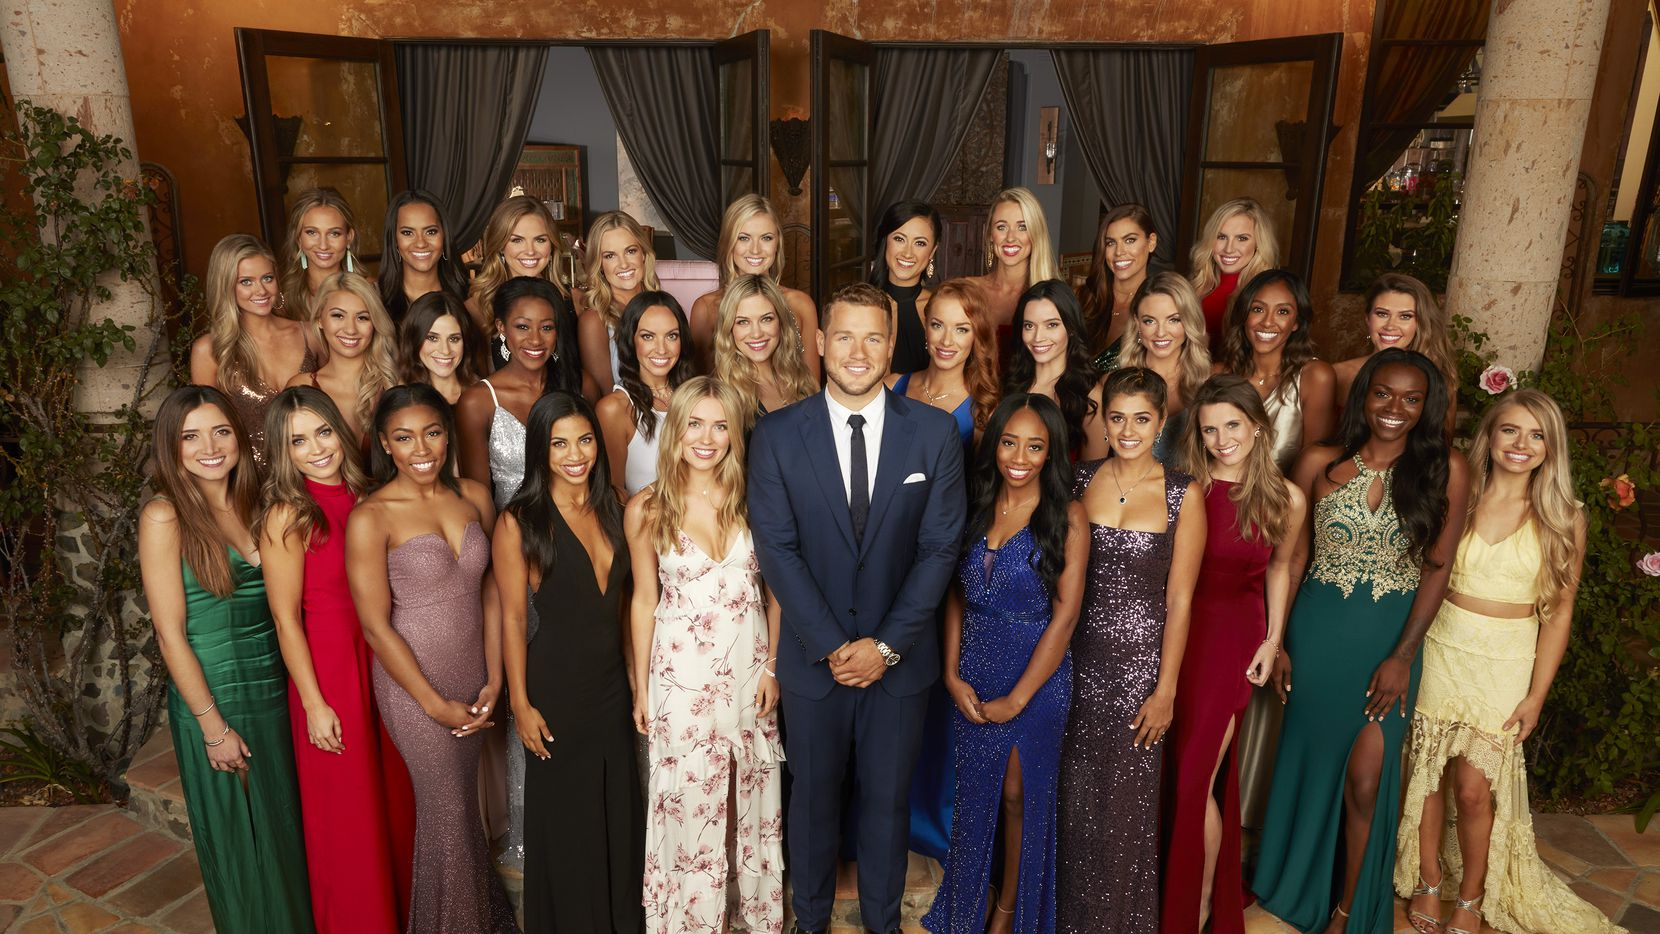 The Bachelor starring Colton Underwood premieres Jan. 7.